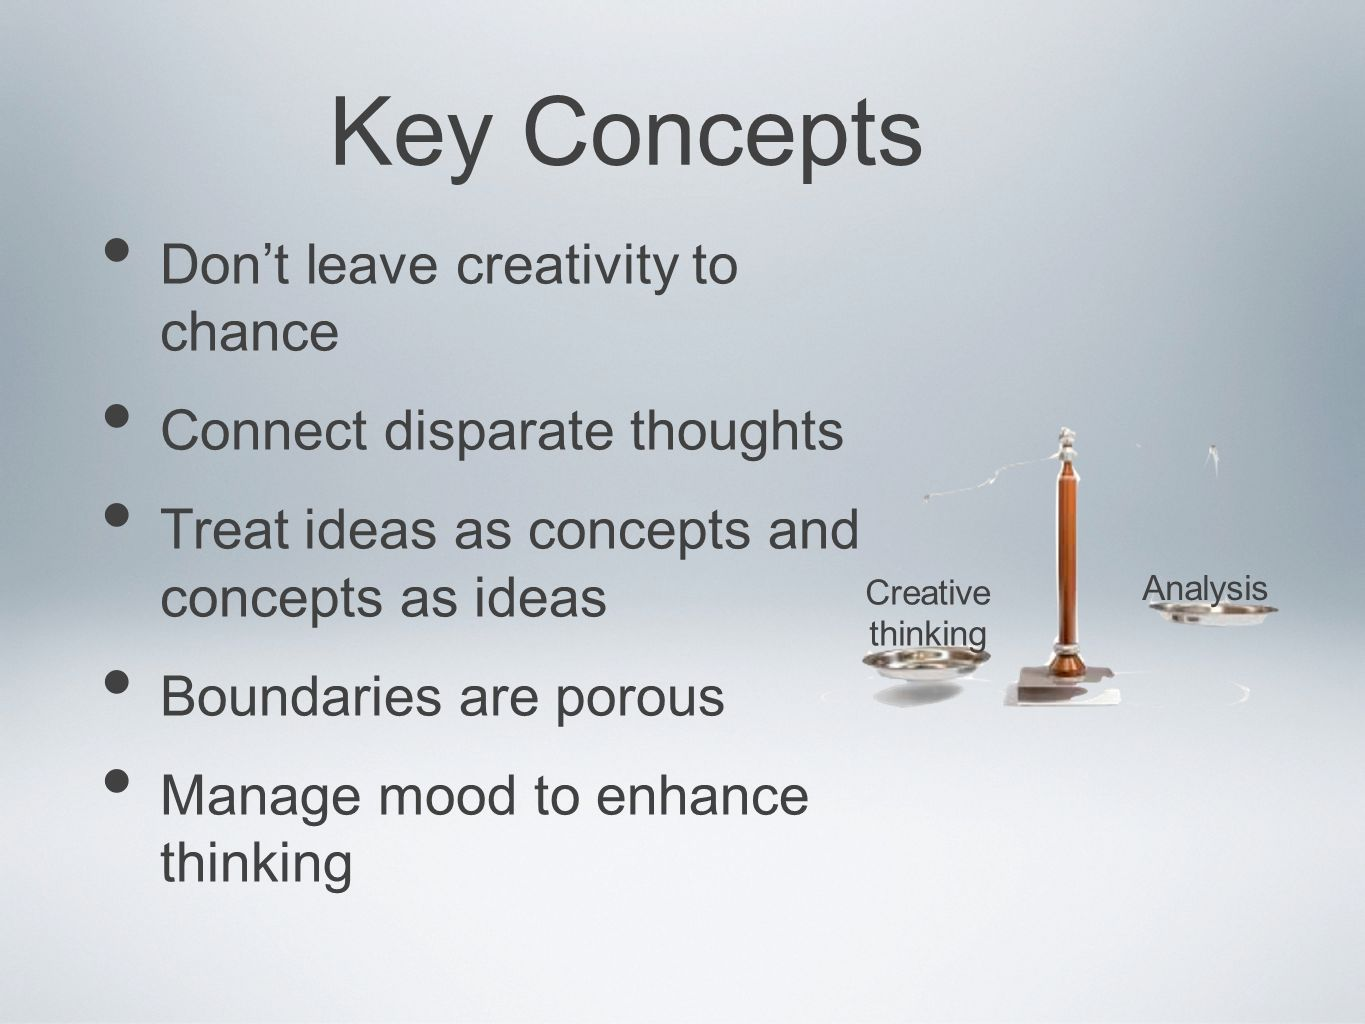 Dont leave creativity to chance Connect disparate thoughts Treat ideas as concepts and concepts as ideas Boundaries are porous Manage mood to enhance thinking Key Concepts Creative thinking Analysis